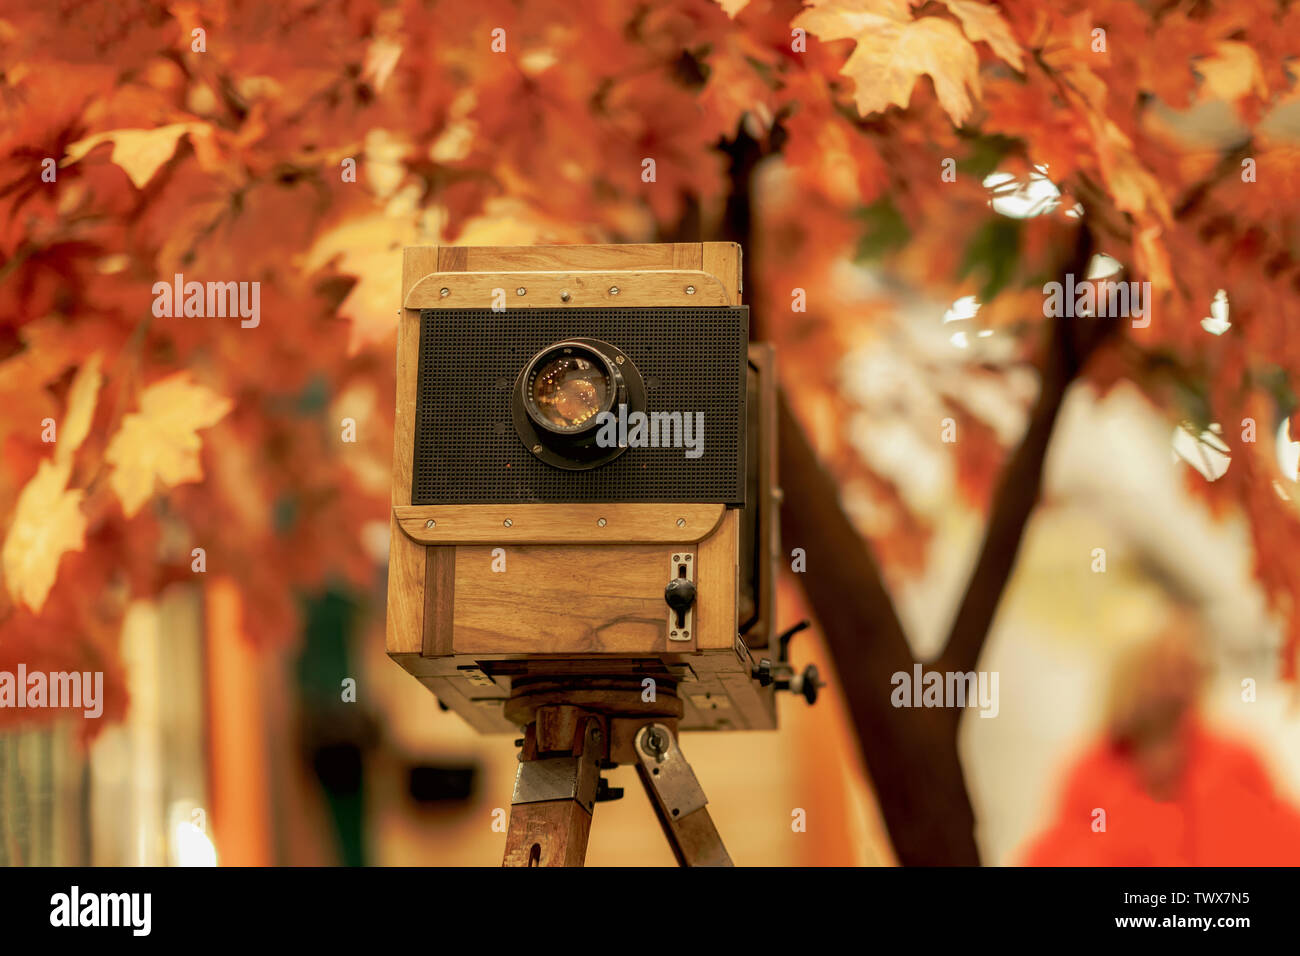 Vintage wooden view photocamera and tripod. Cocept retro, nostalgia and time. Autumn background - Stock Image